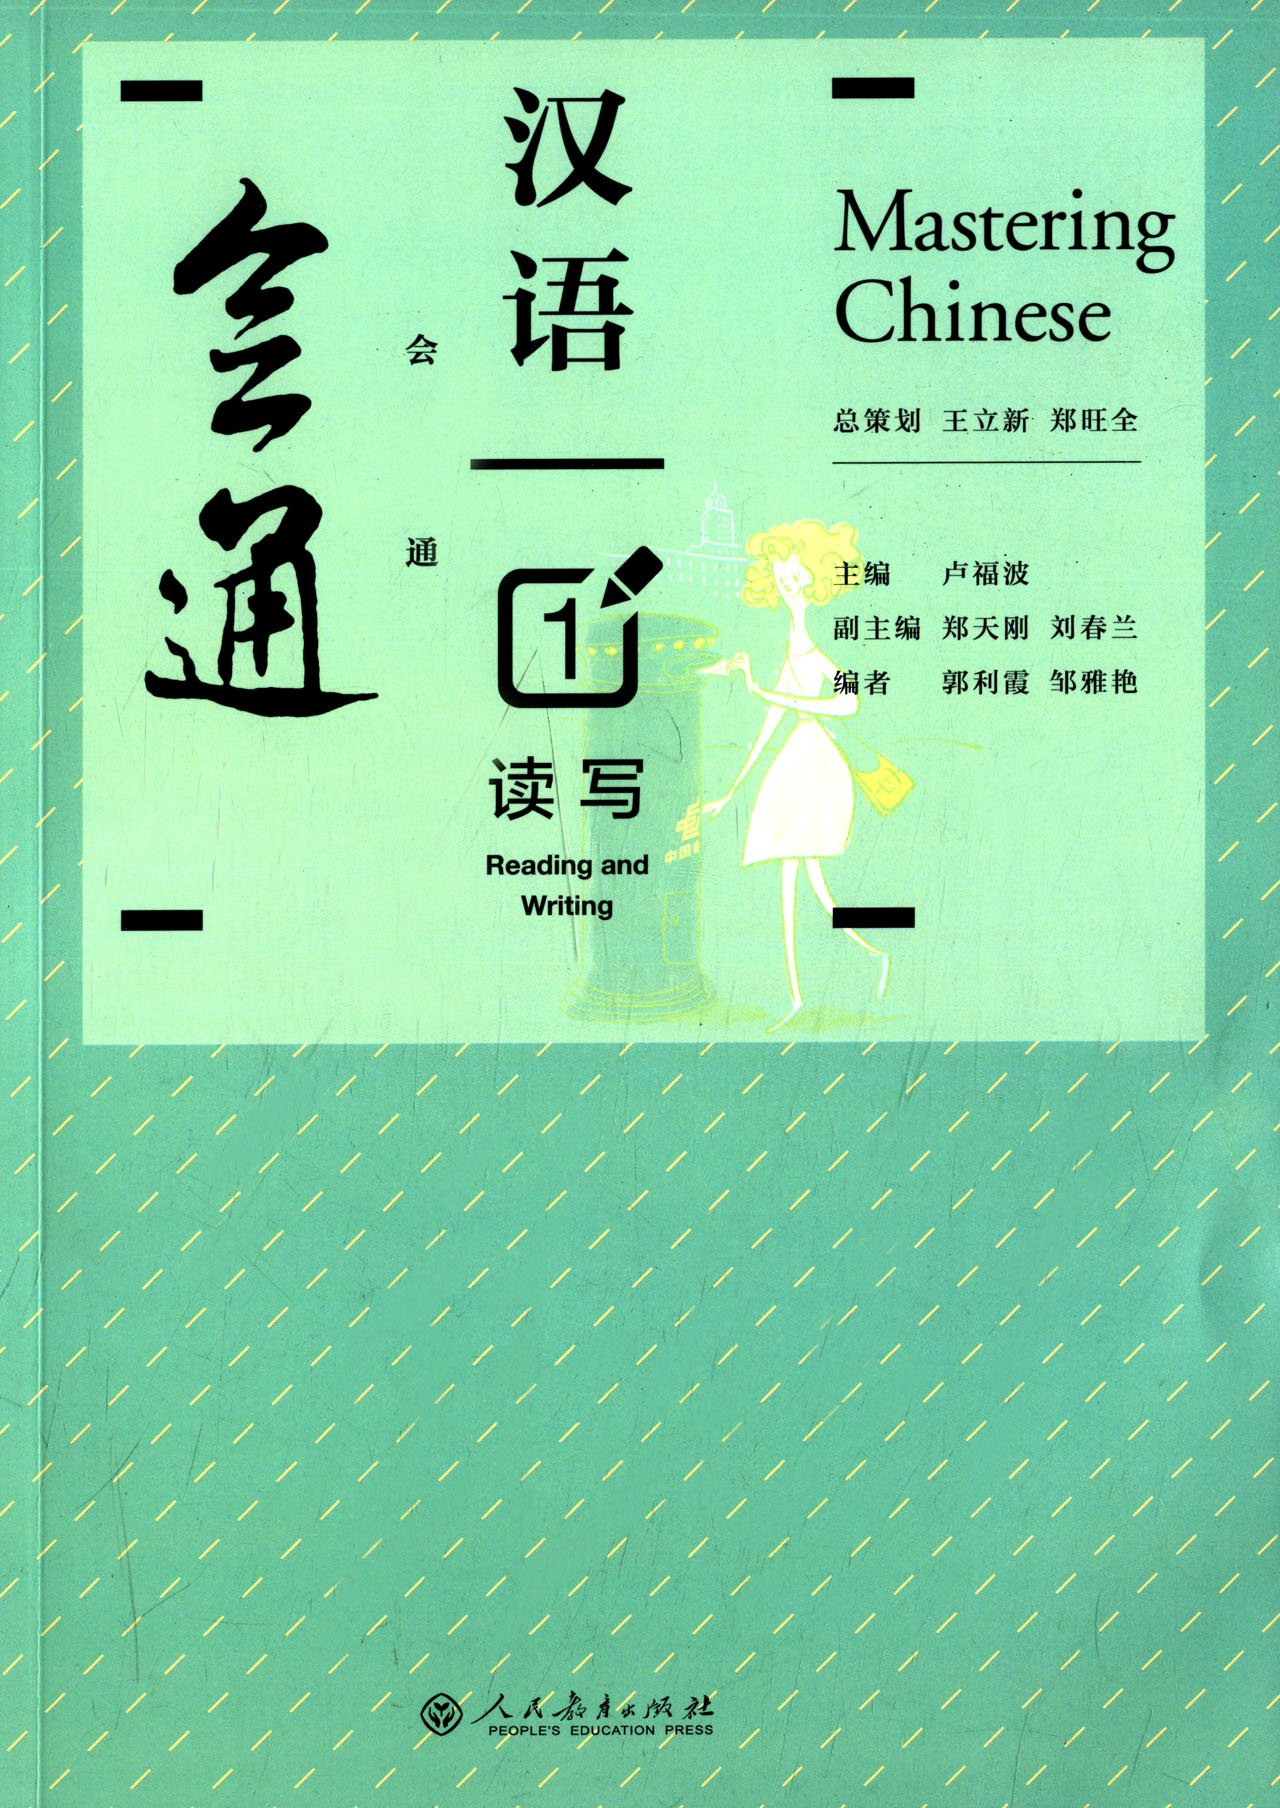 Mastering Chinese 1 - Reading and Writing